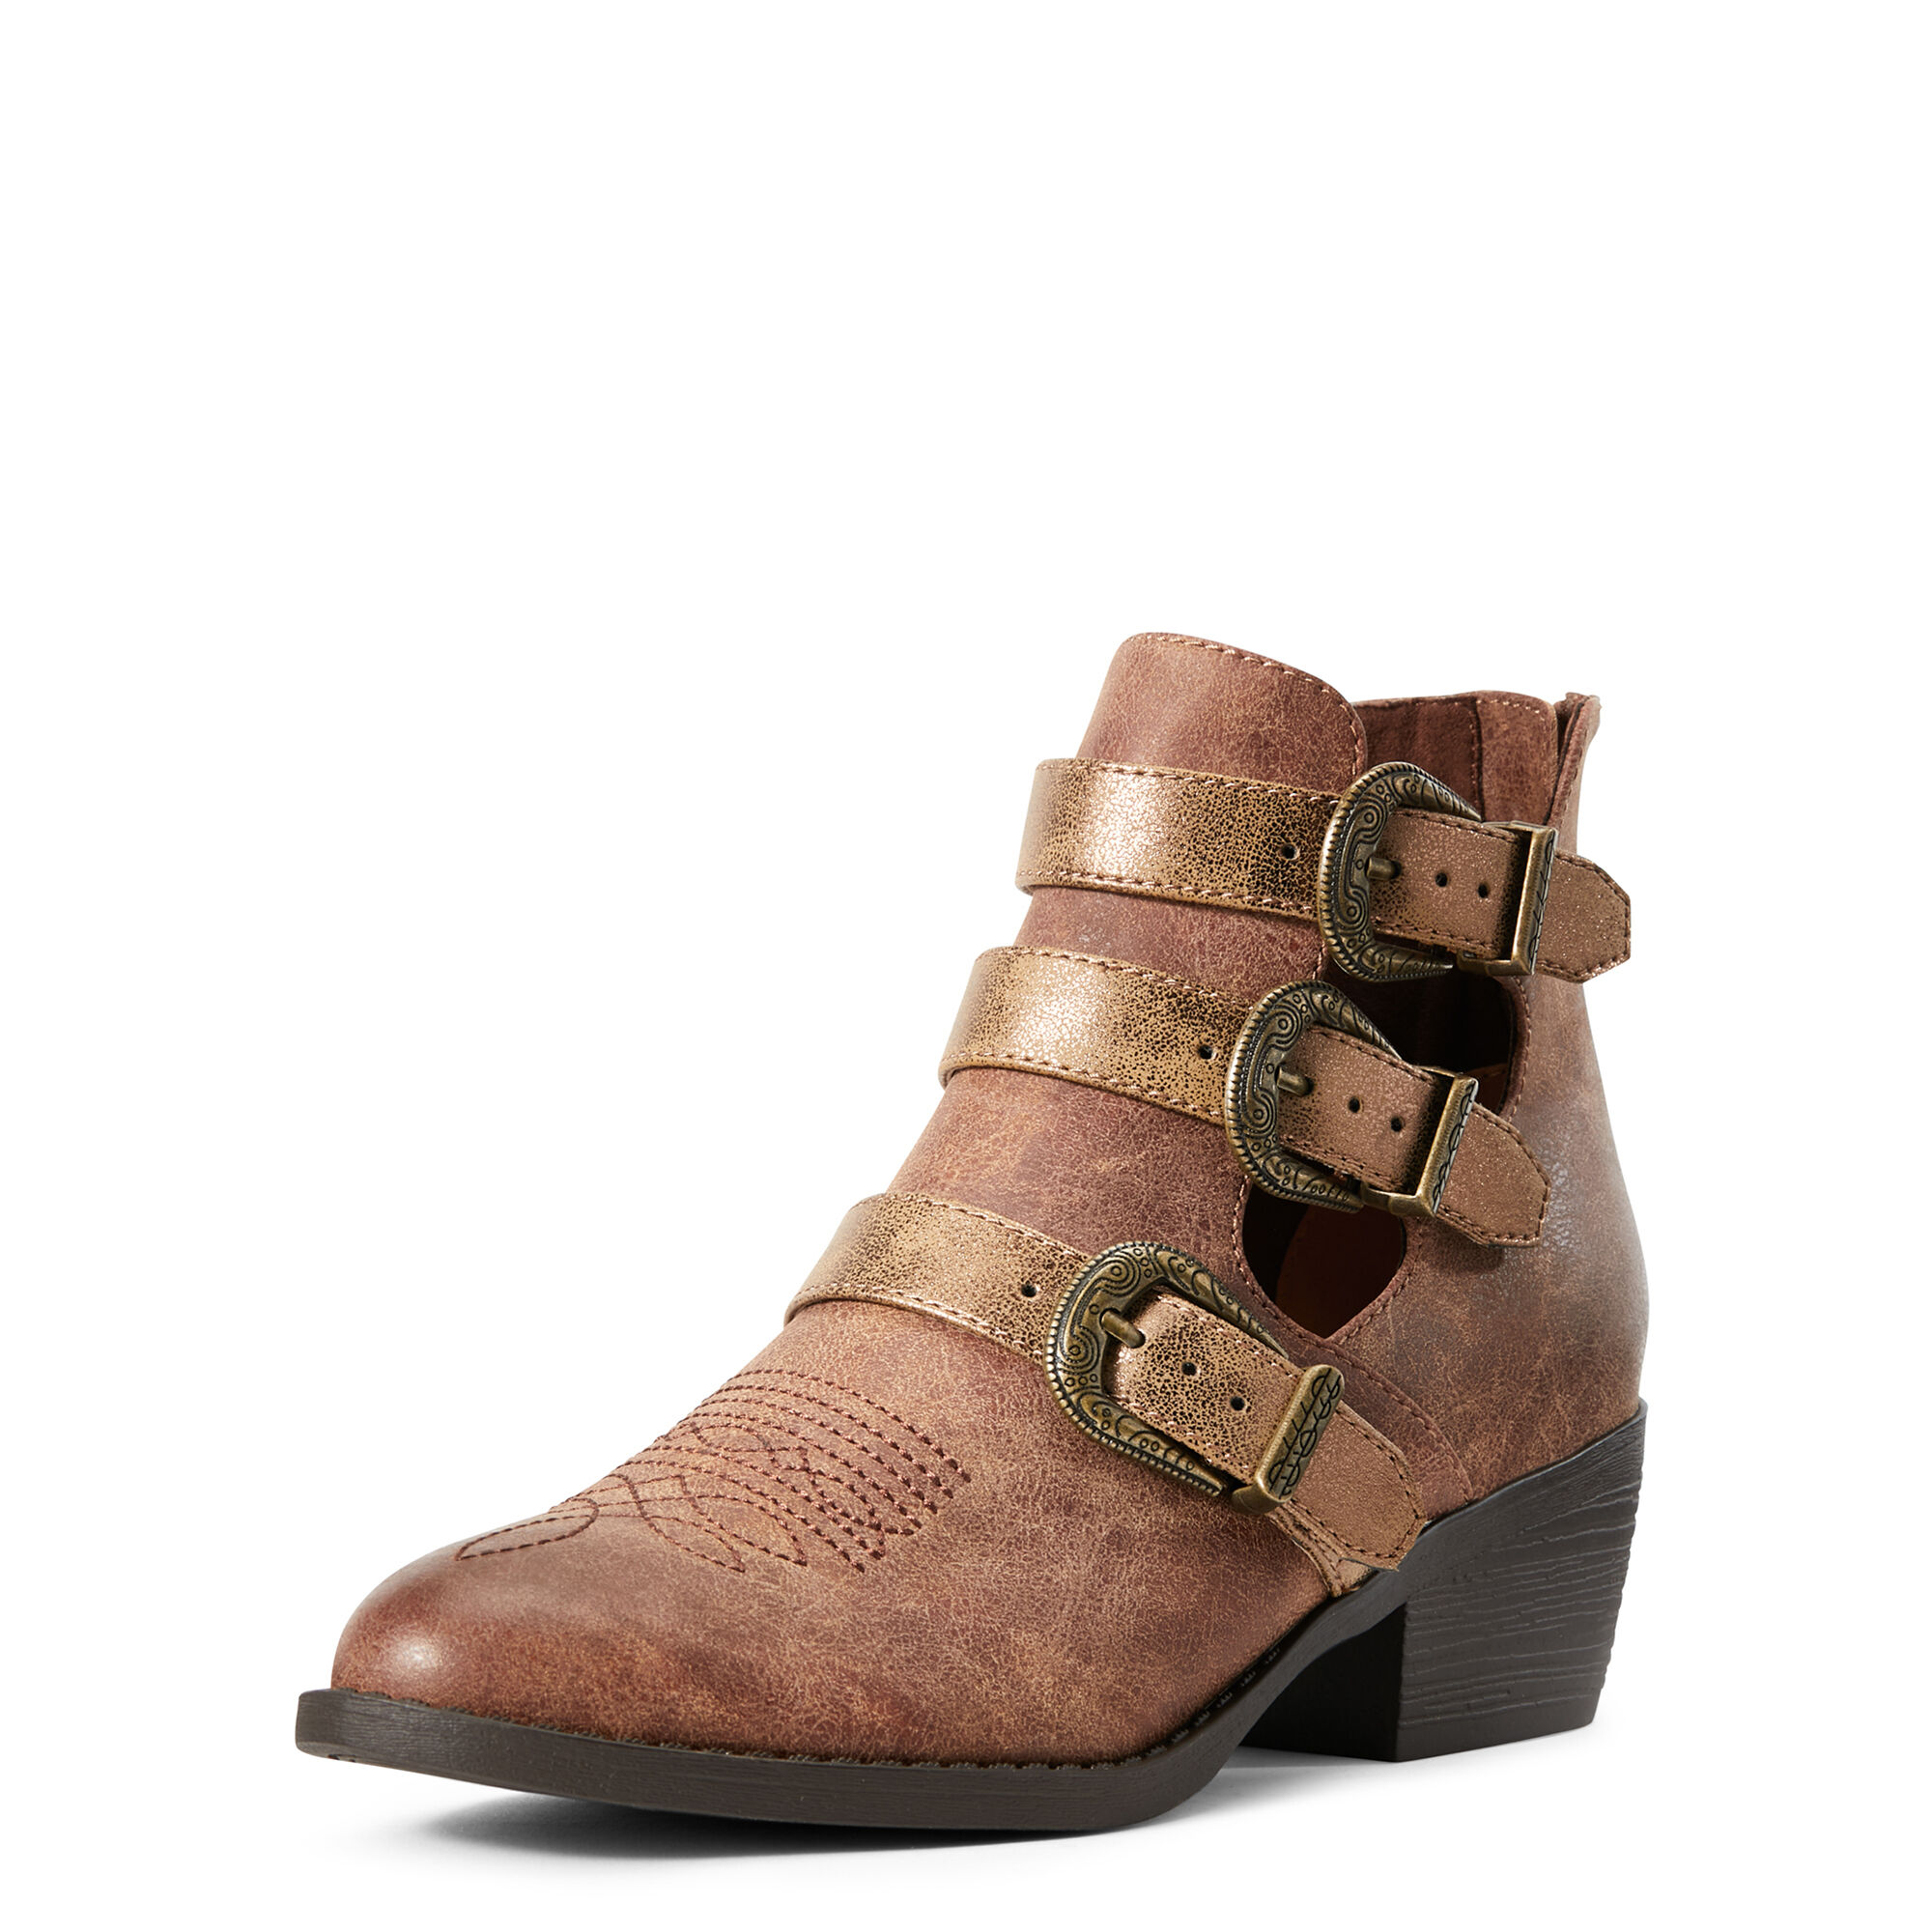 Ariat Unbridled Melody Boots in Distressed Tan